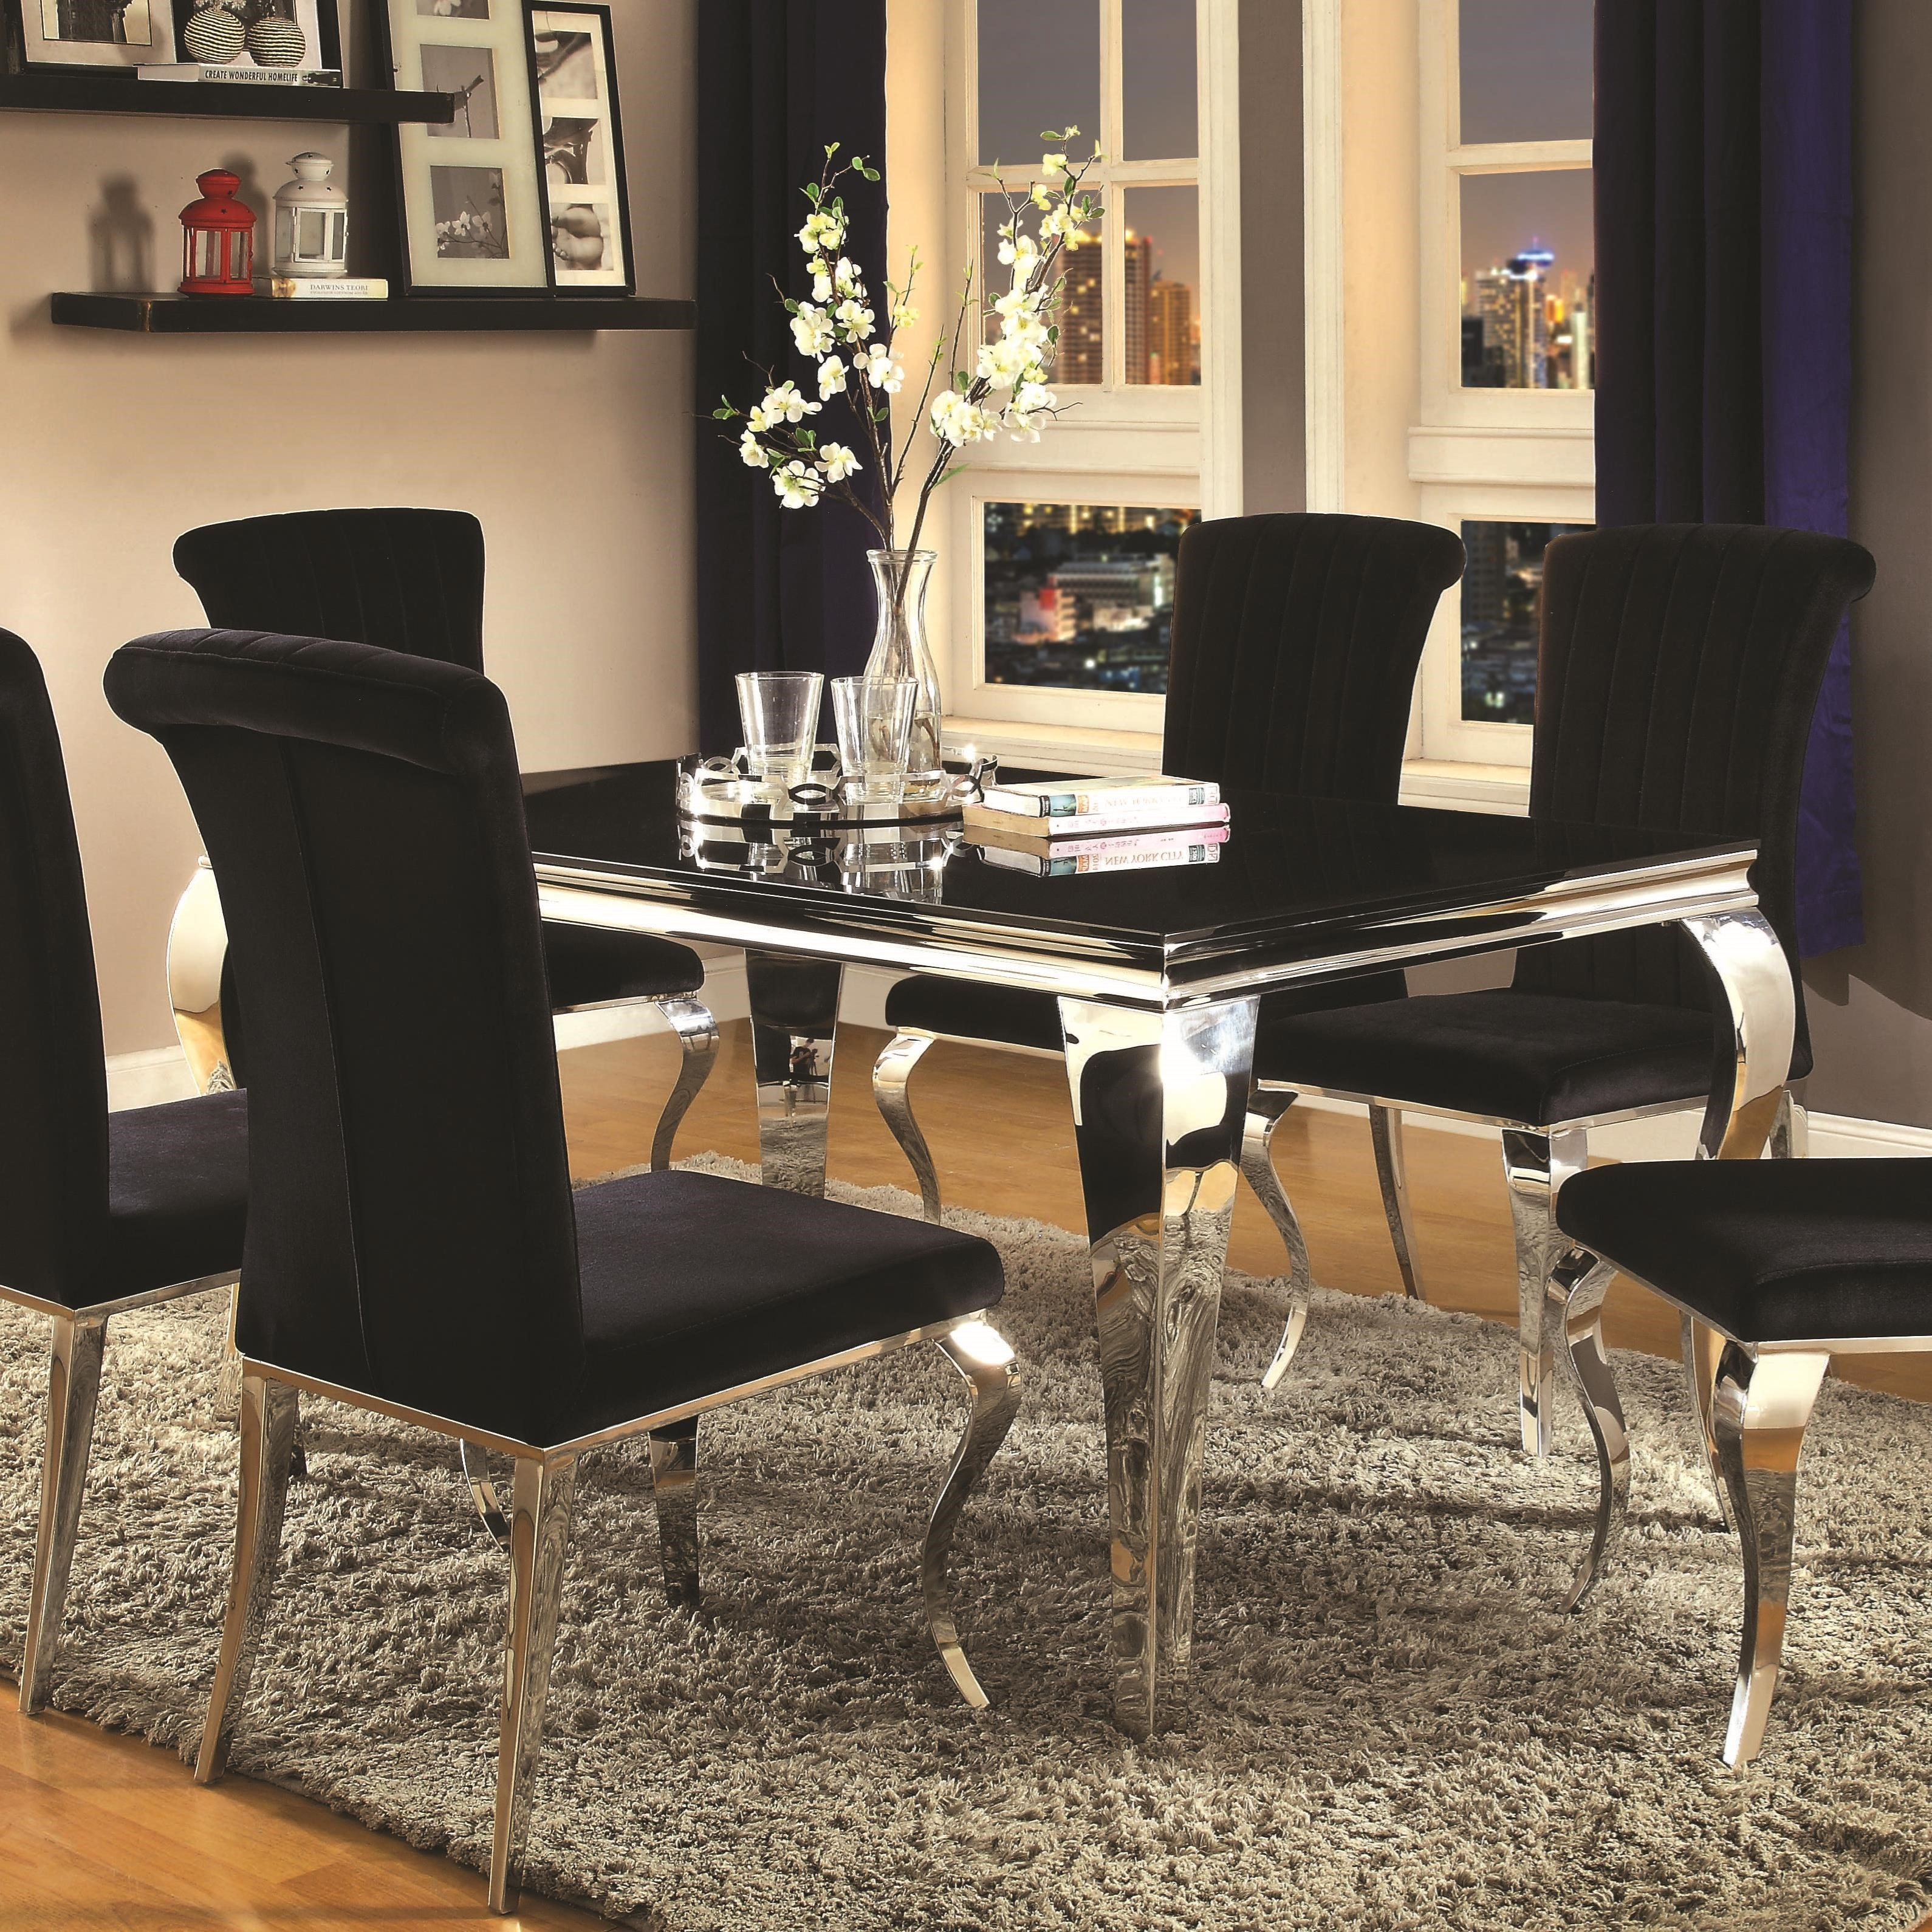 value city kitchen sets appliance package deals sears coaster carone contemporary rectangular dining table